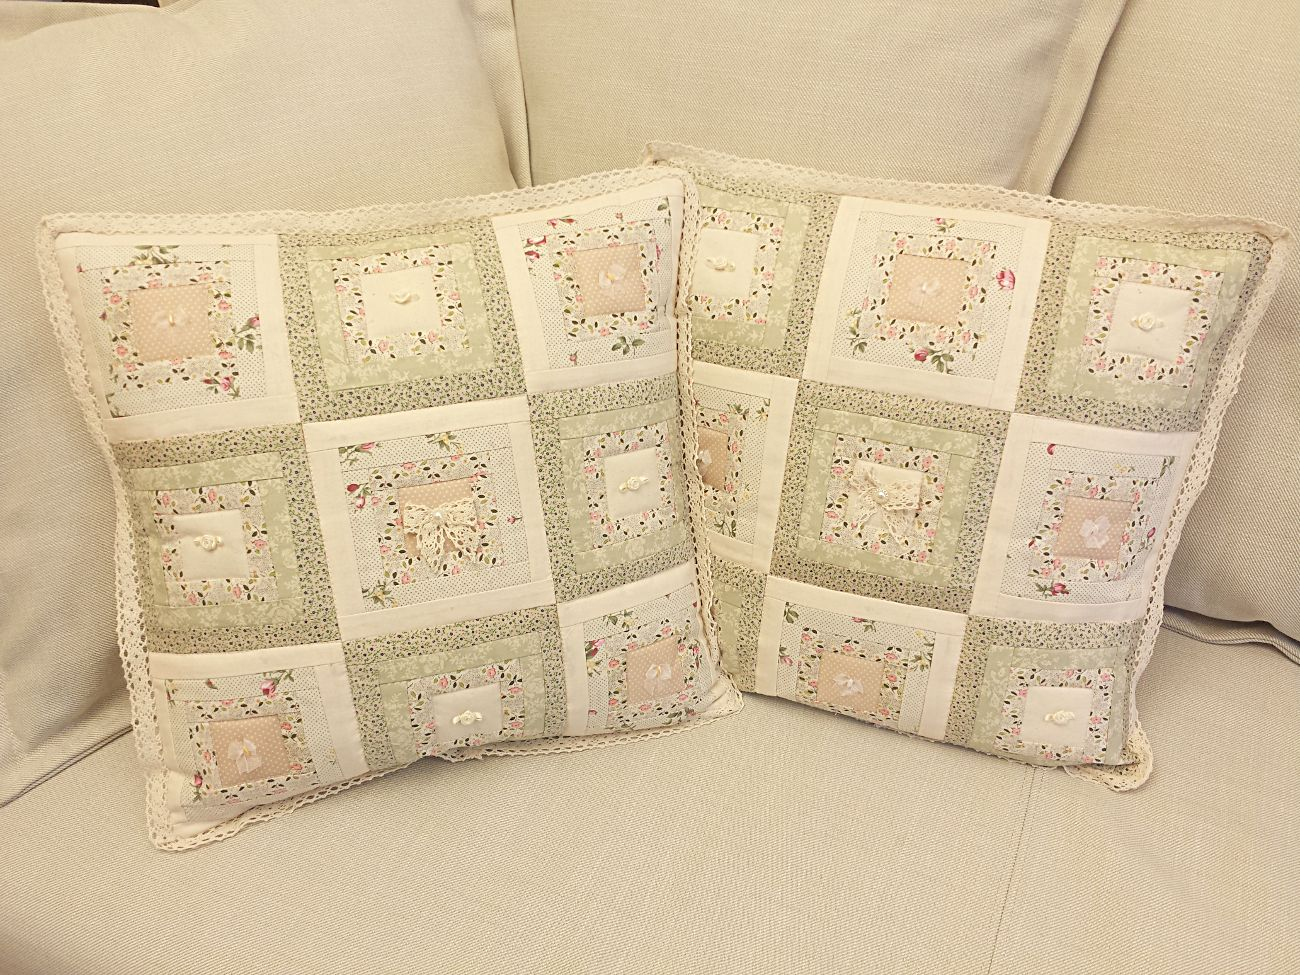 Shabby chic patchwork cushion covers my cushion covers